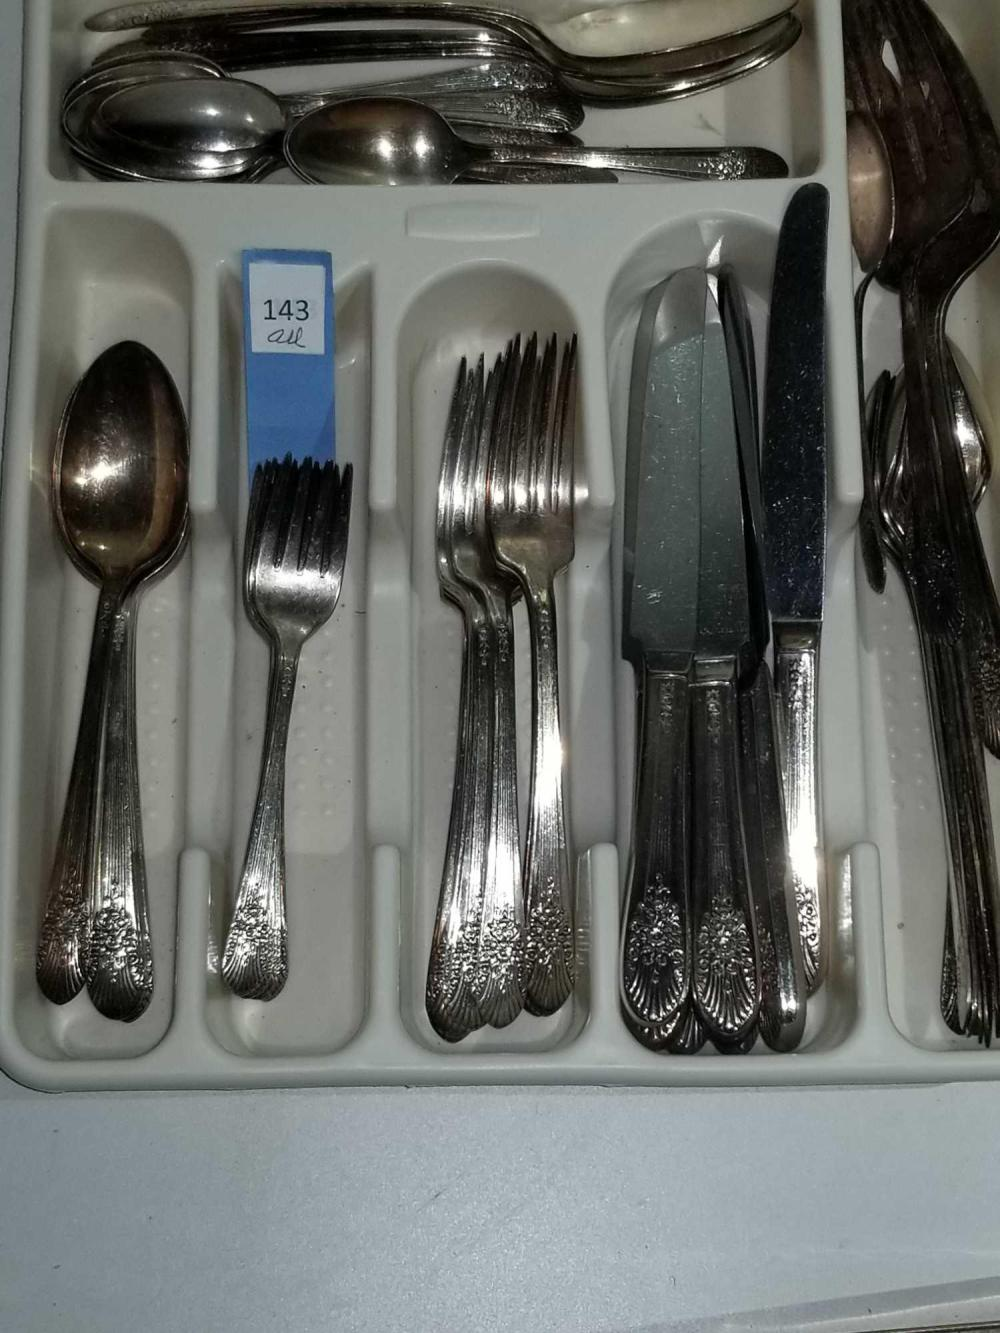 WM. ROGERS CO. SILVER PLATED FLATWARE - 67 PCS.